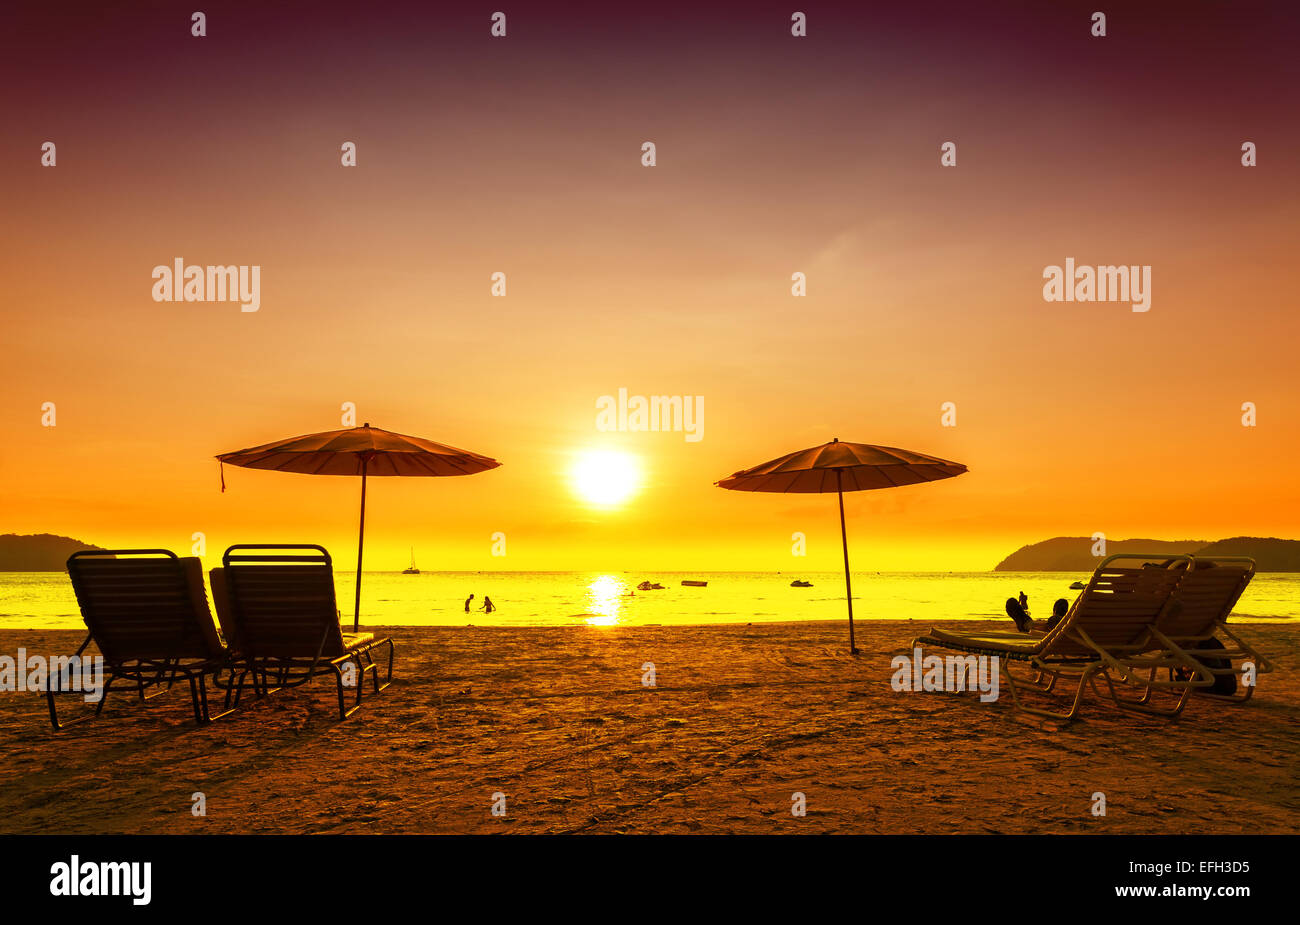 Beach sunset with chairs - Retro Filtered Picture Of Beach Chairs And Umbrellas On Sand At Sunset Concept For Rest Relaxation Holidays